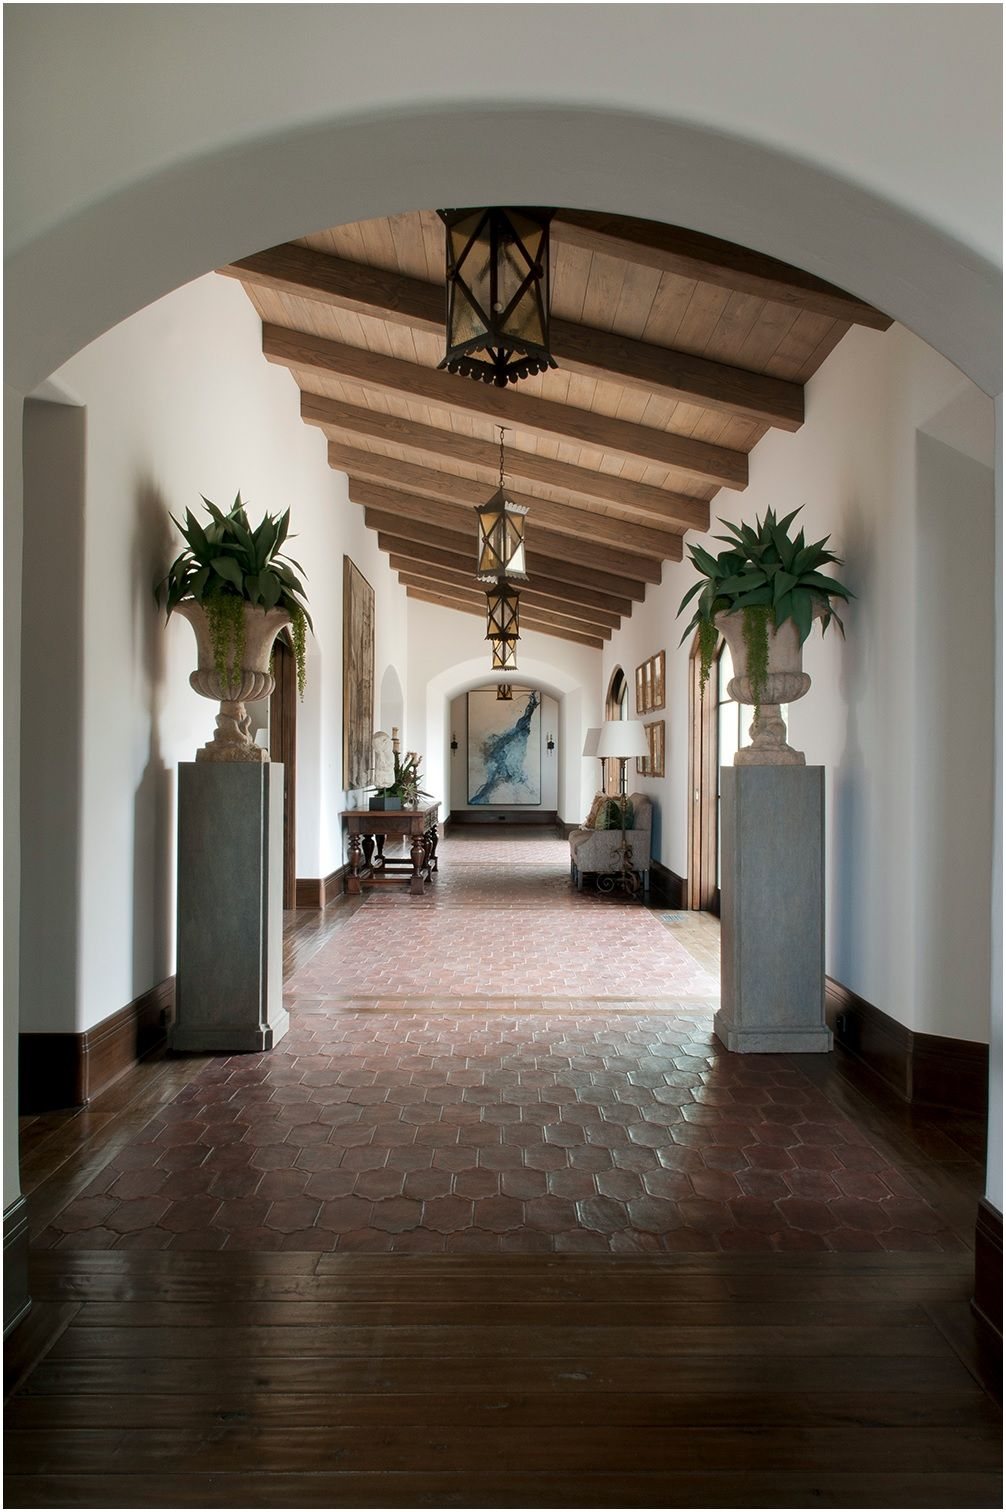 This is the color of the wood ceiling that i was thinking for Spanish style interior design